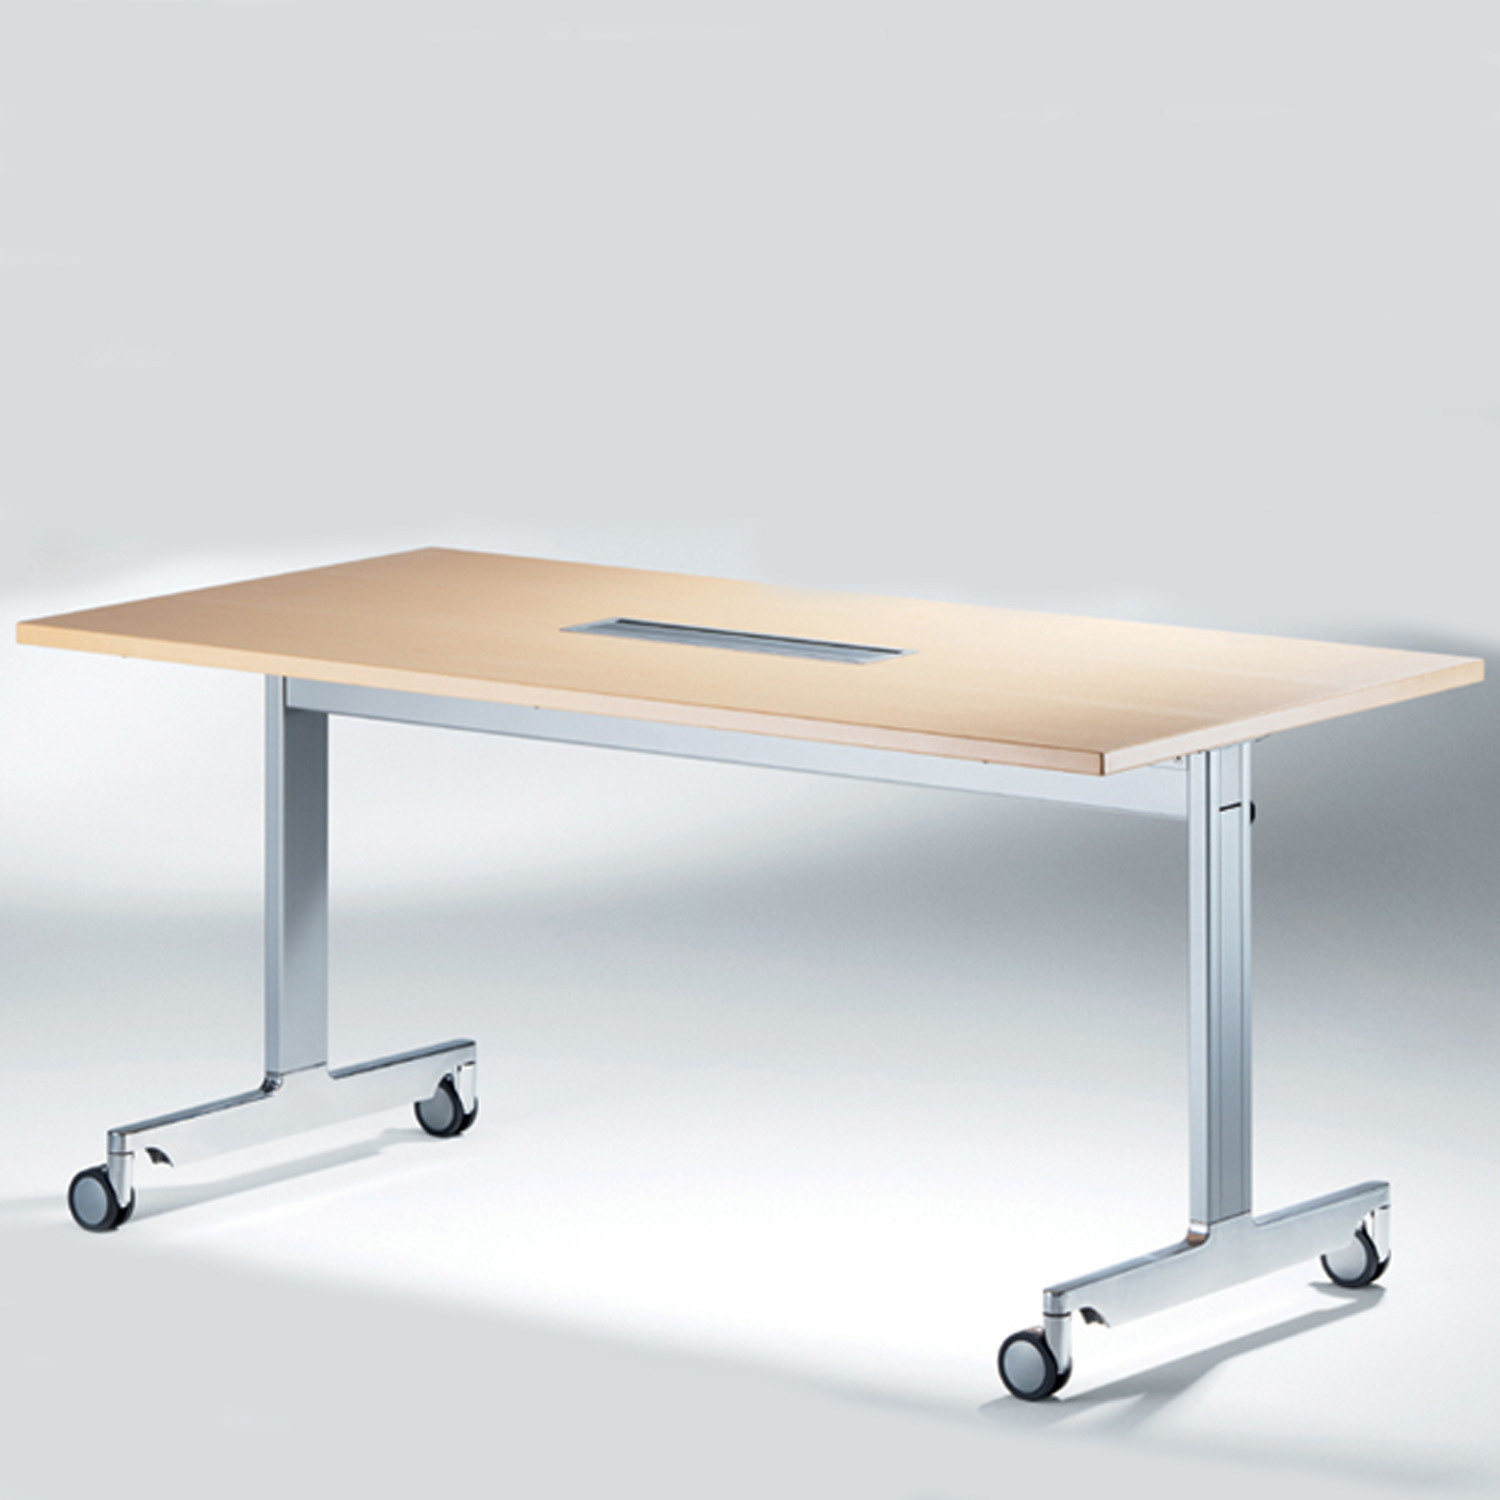 N_Table Folding Table for Office